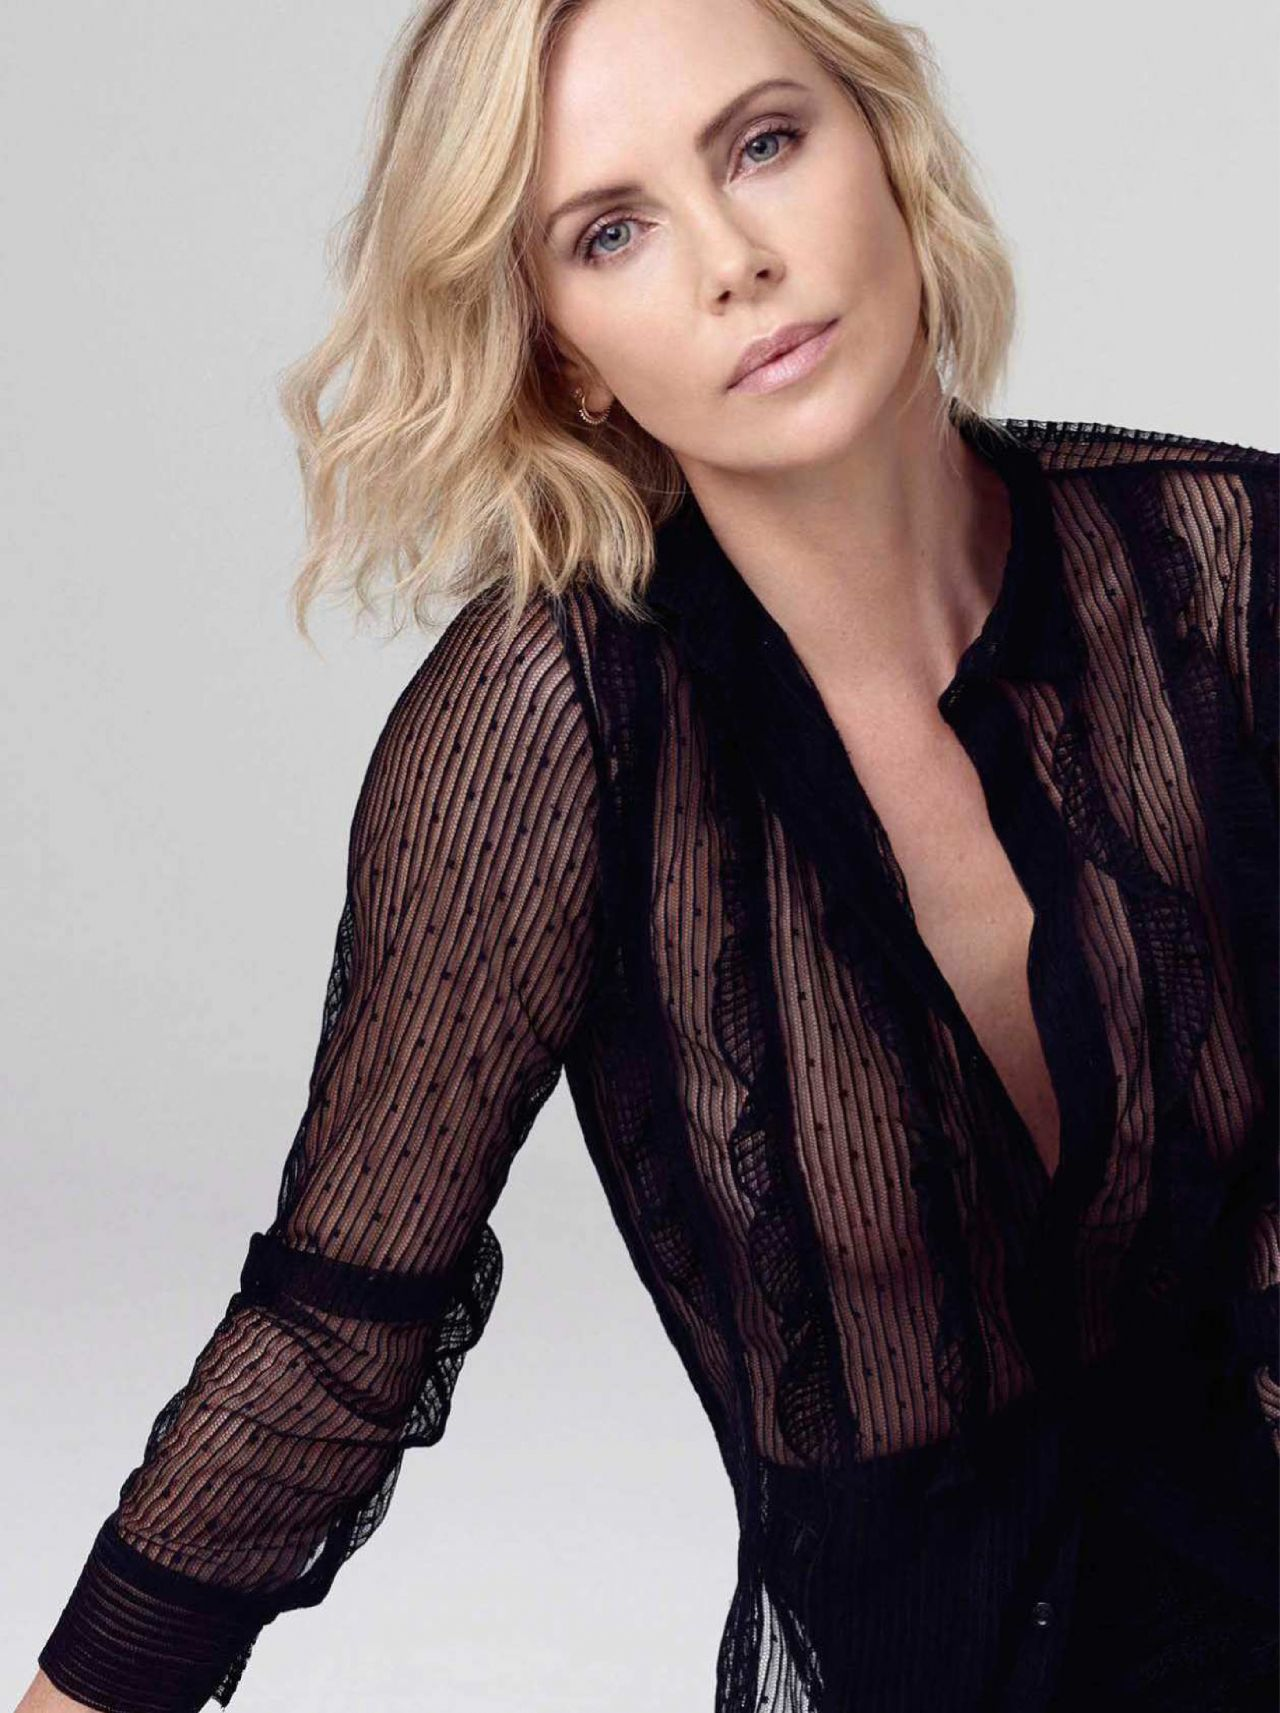 Charlize Theron photo #876153